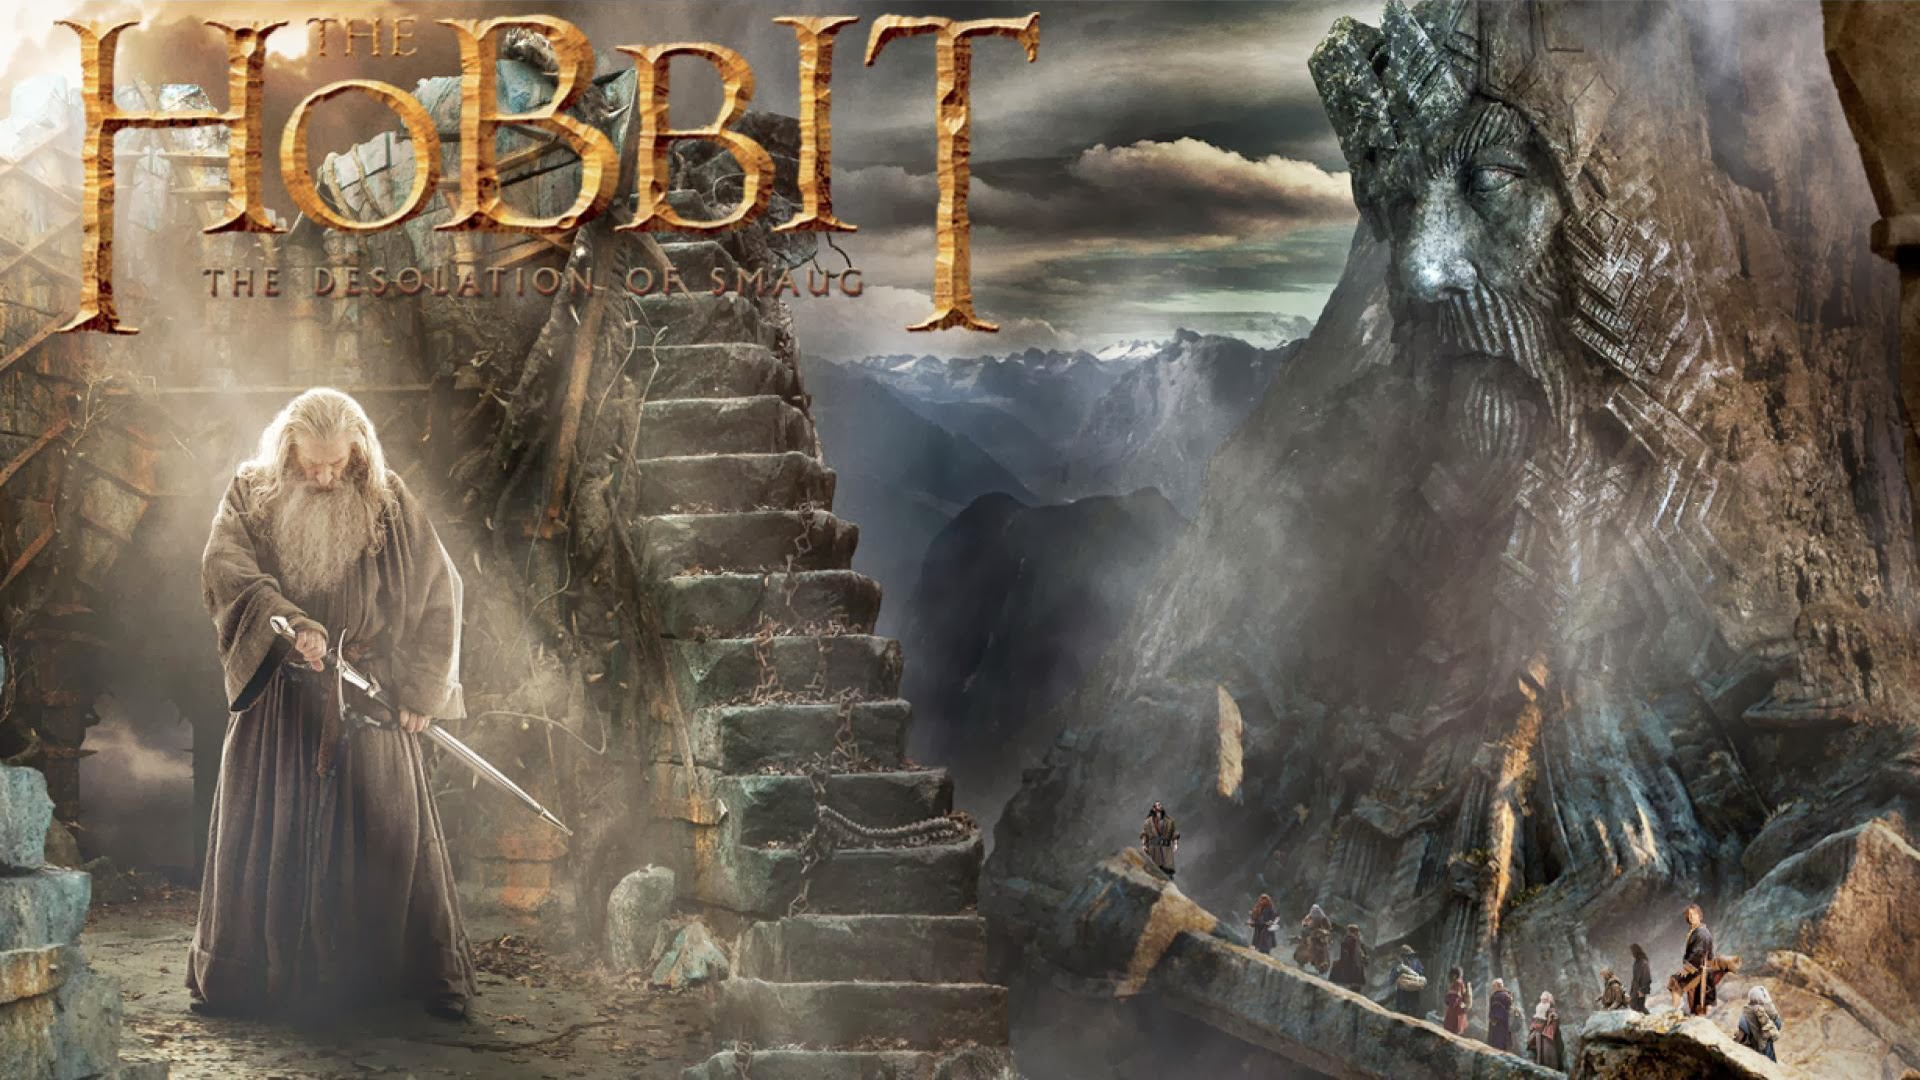 Smaug Gandalf Wallpaper The Hobbit The Desolation Of Smaug Gandalf HD 1920x1080